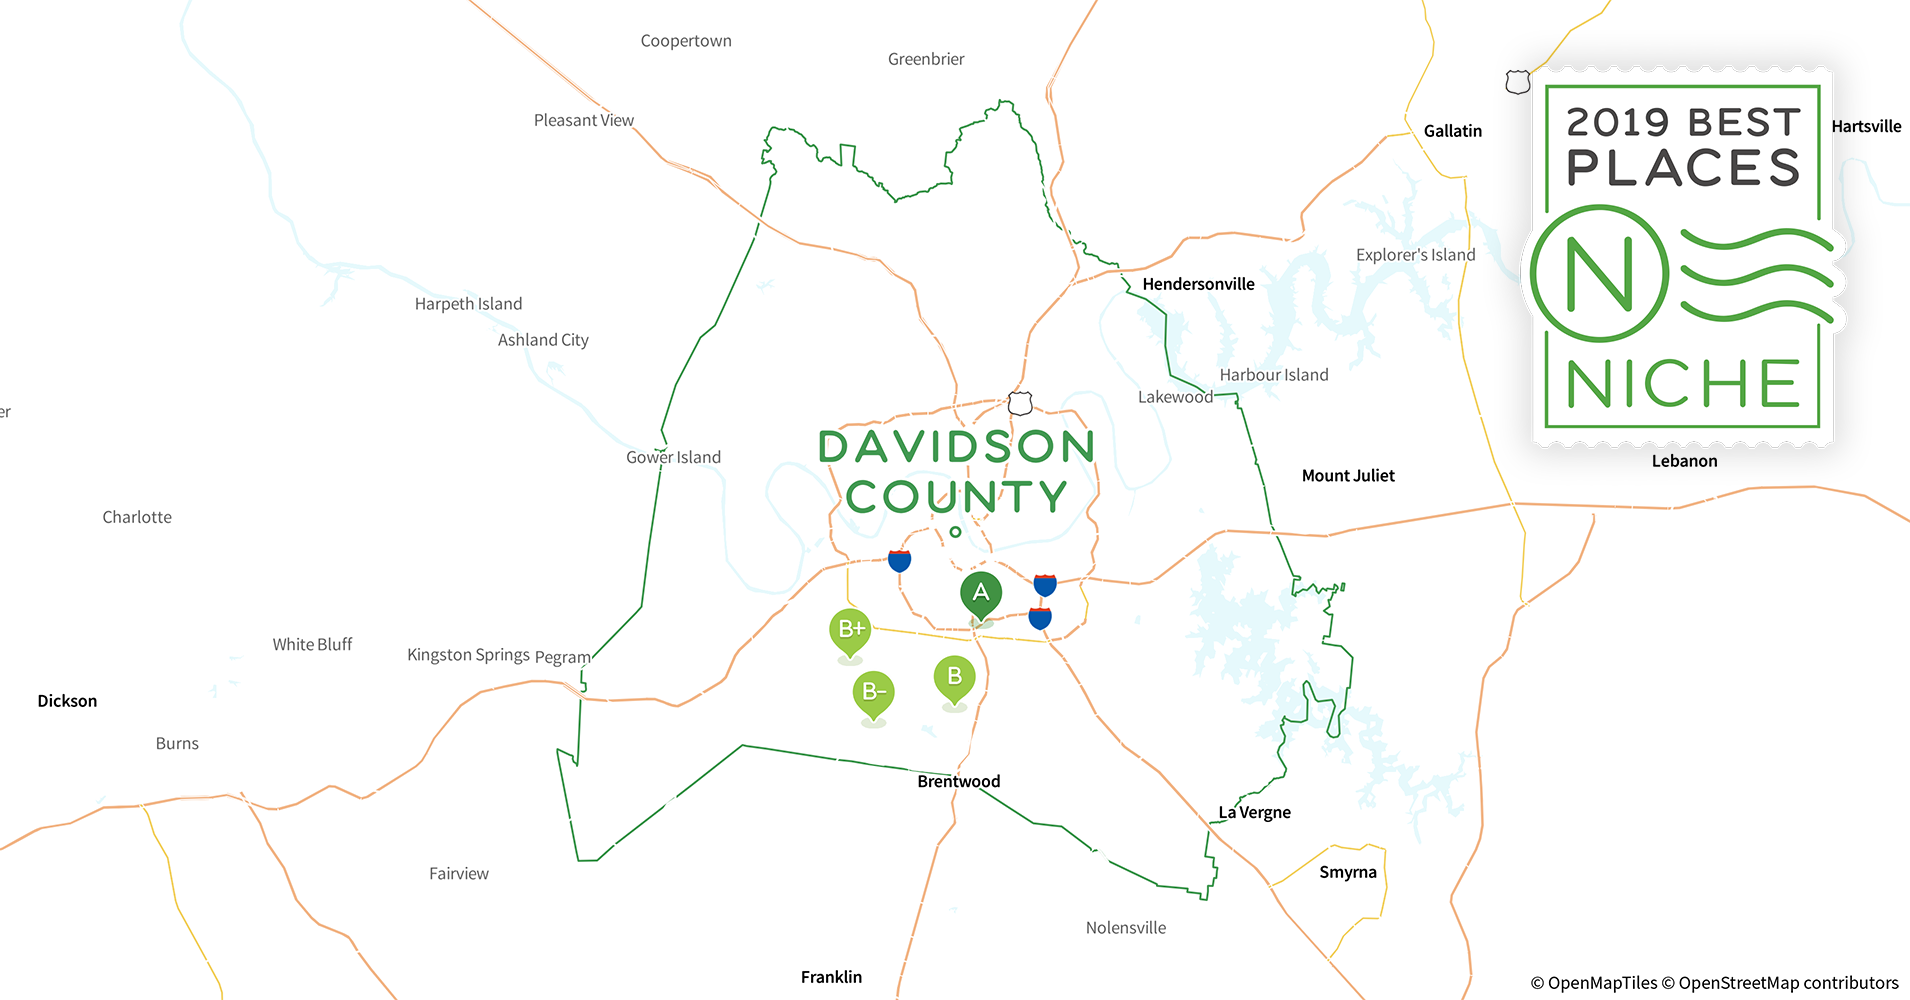 2019 Best Places to Live in Davidson County, TN - Niche